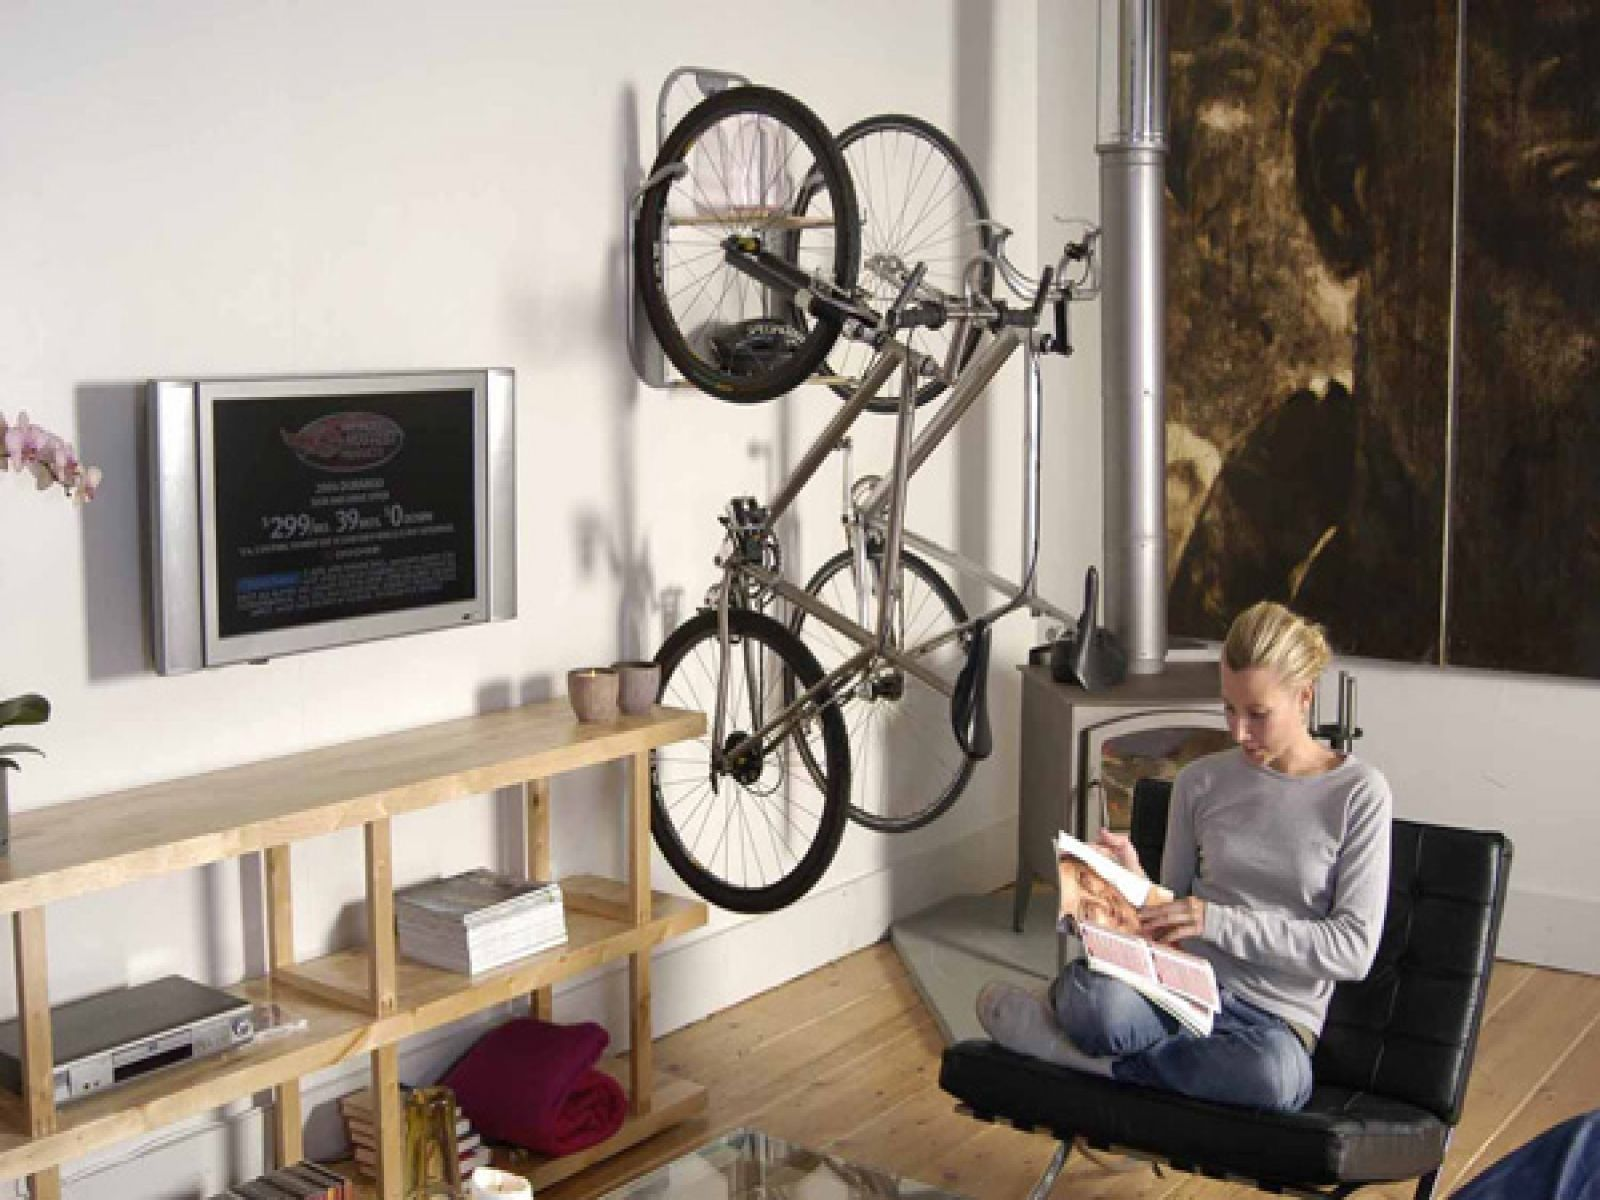 Bicycle Storage Apartment   For More Great Pics, Follow Www.bikeengines.com